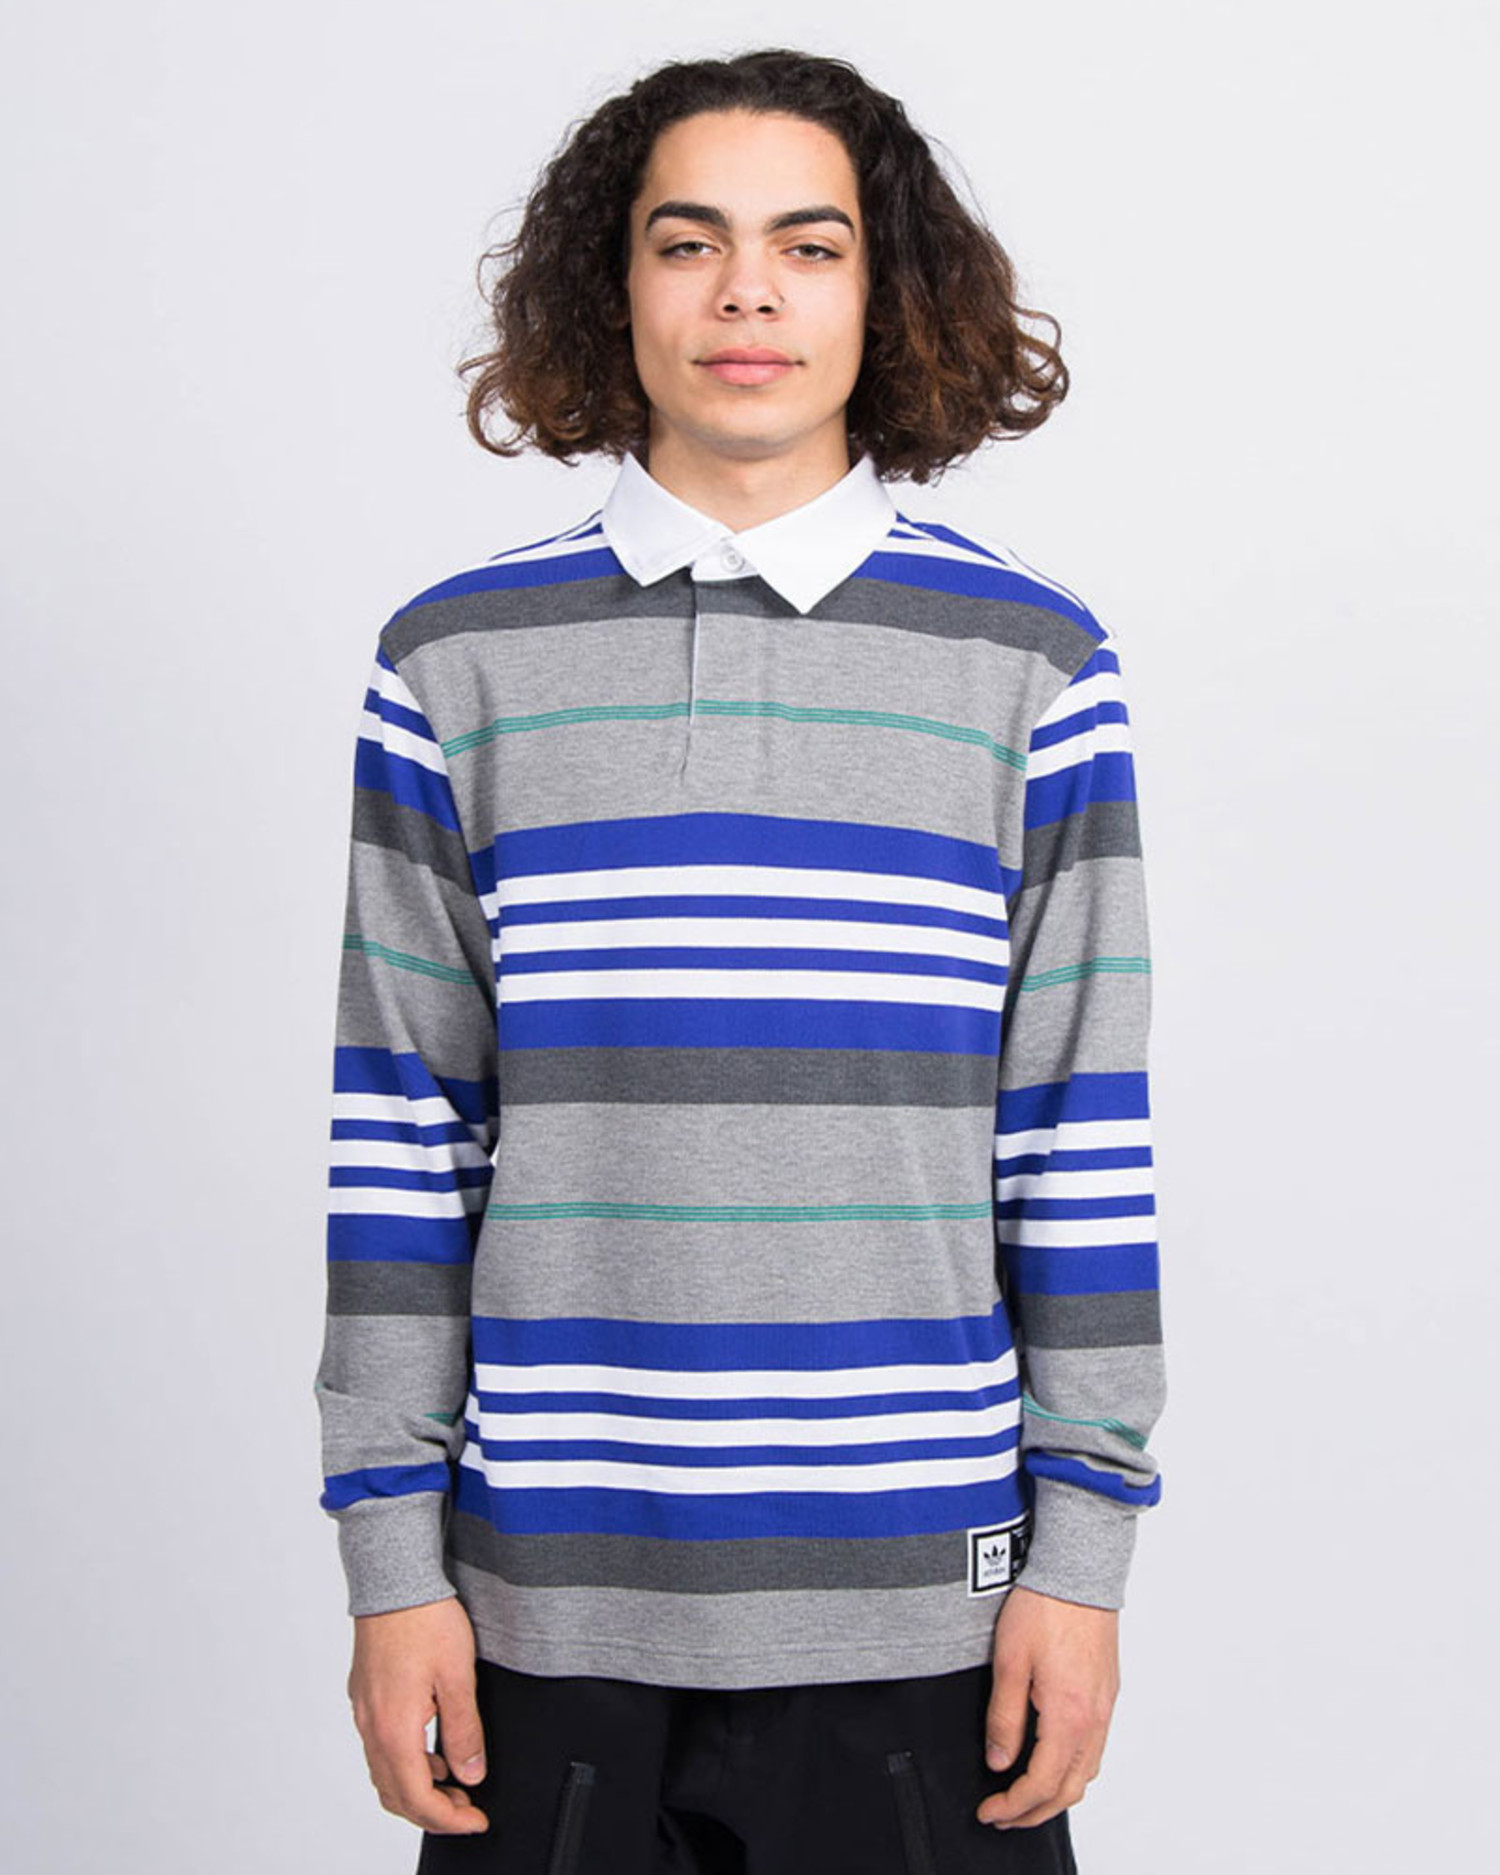 adidas Skateboarding Cleland Polo T-Shirt Grey / Blue